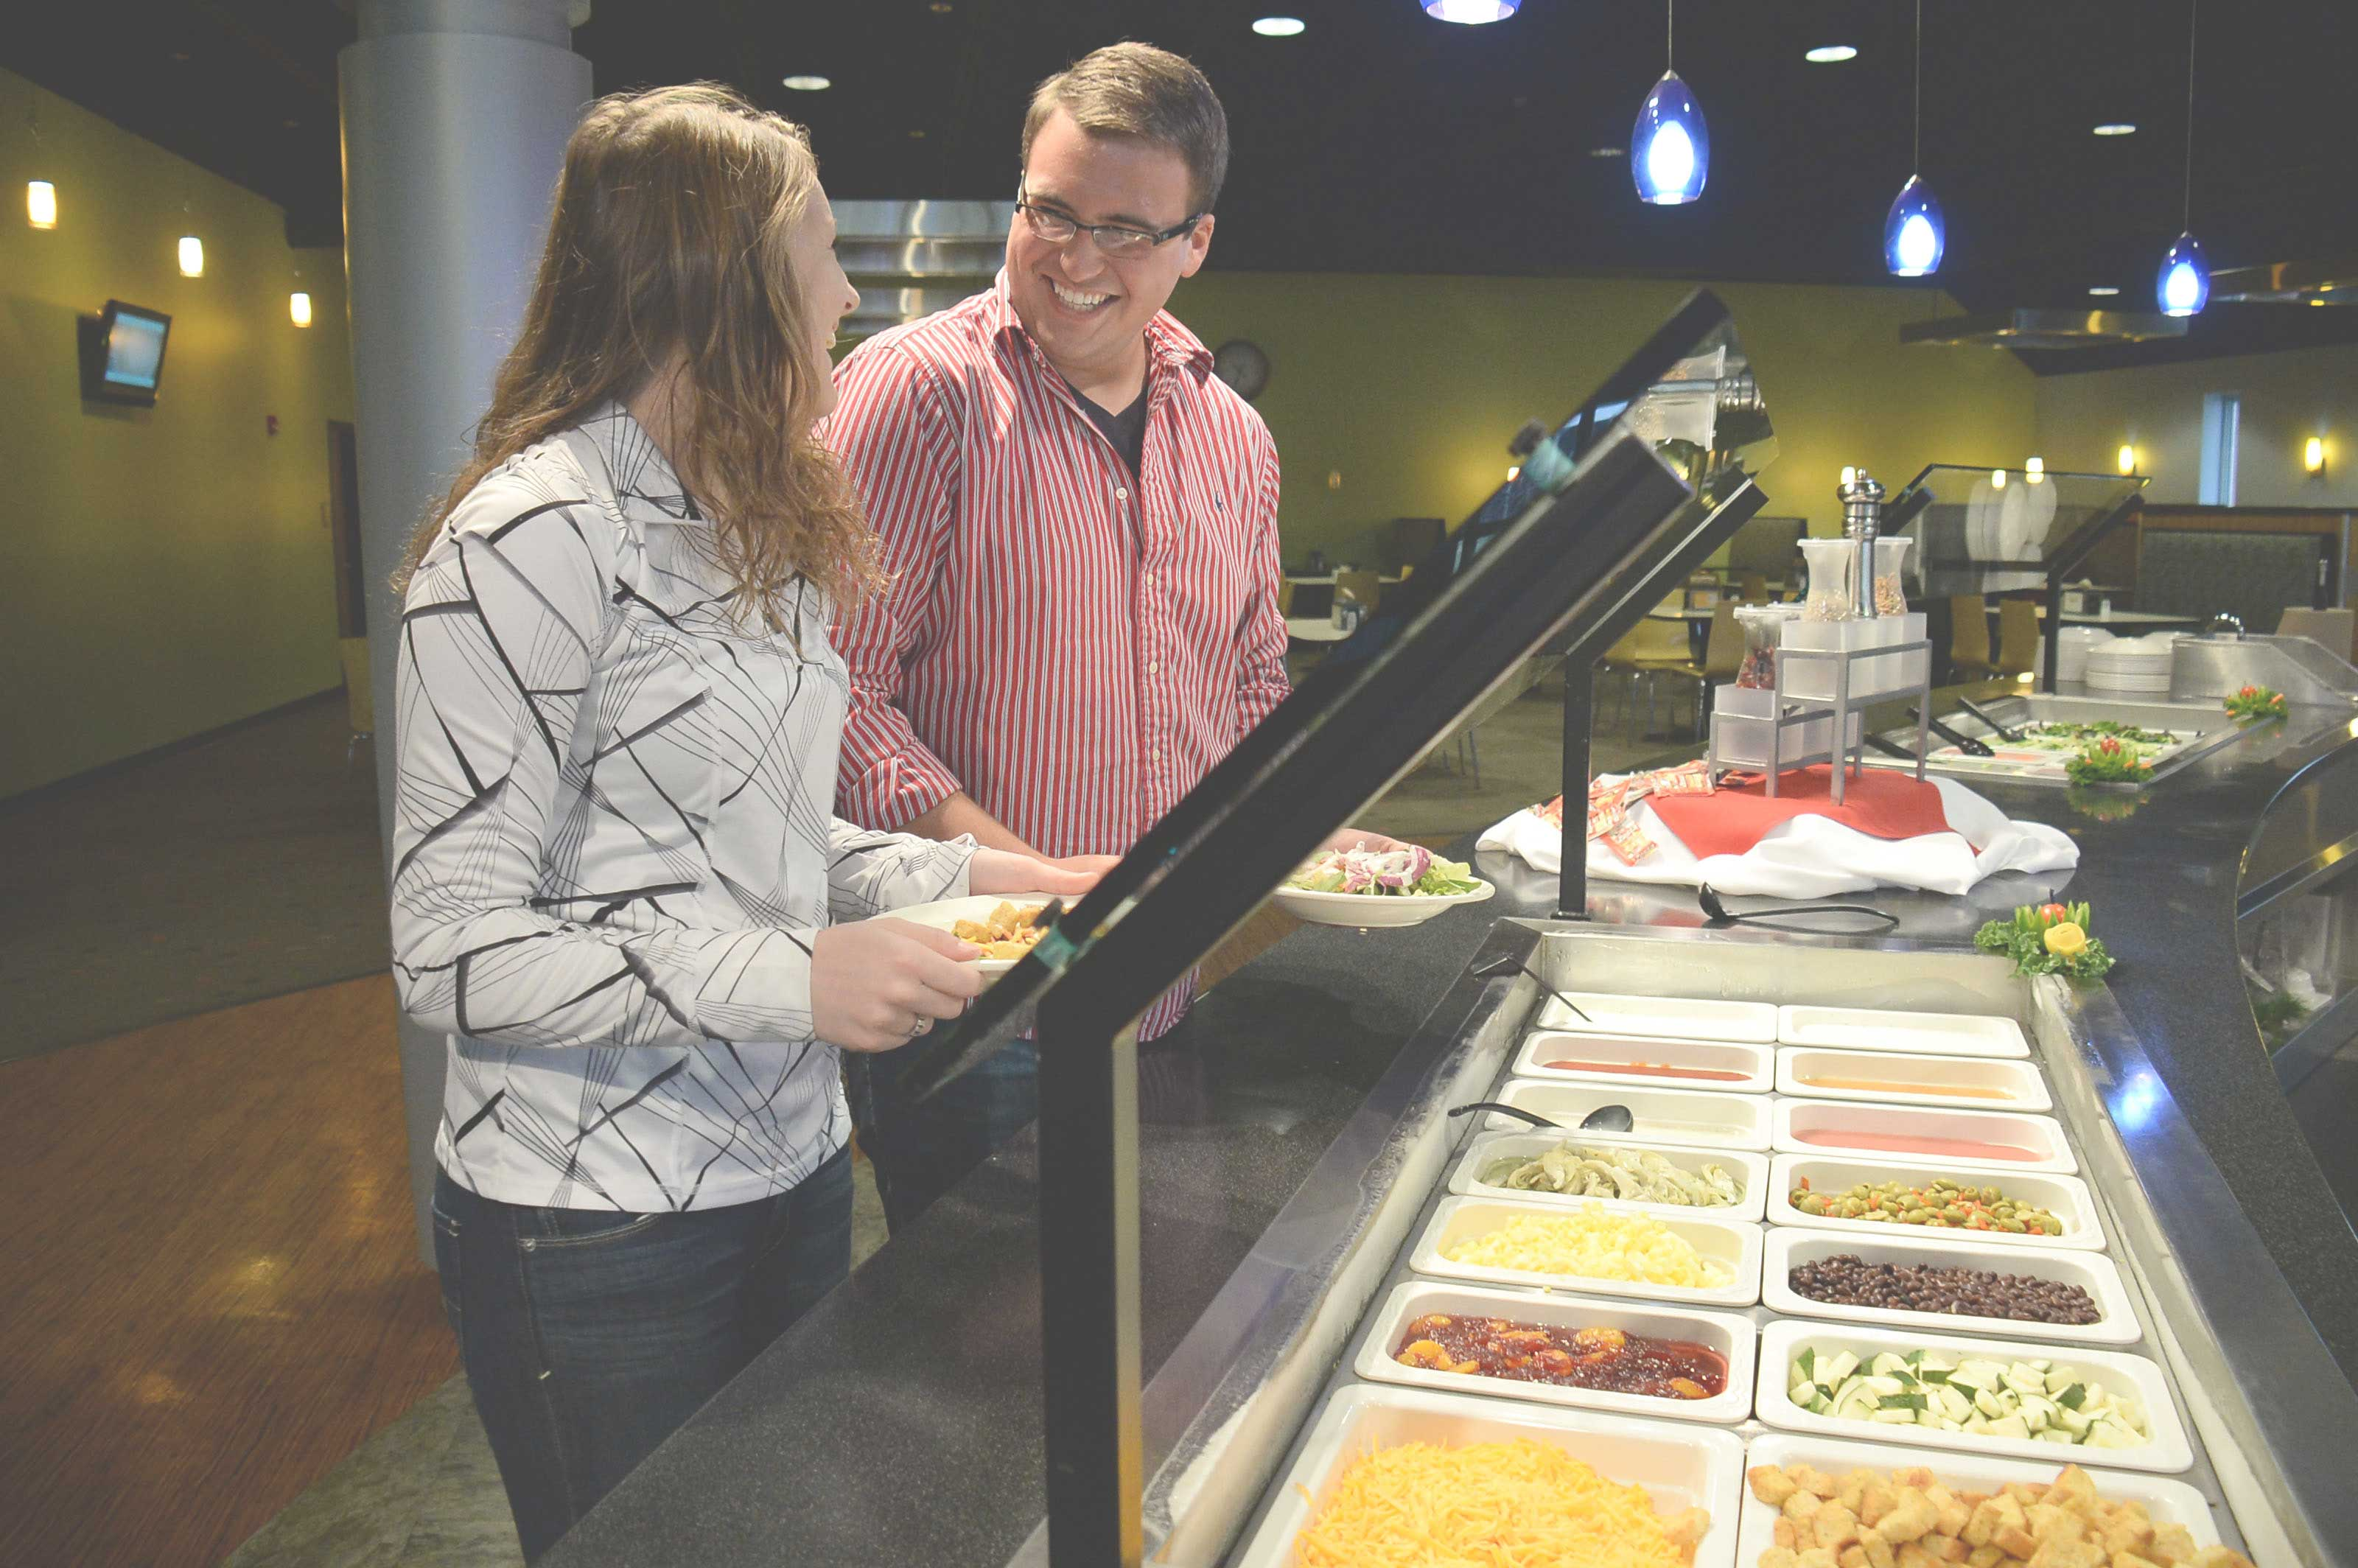 Resources available on the Vincennes campus, including residential life and dining